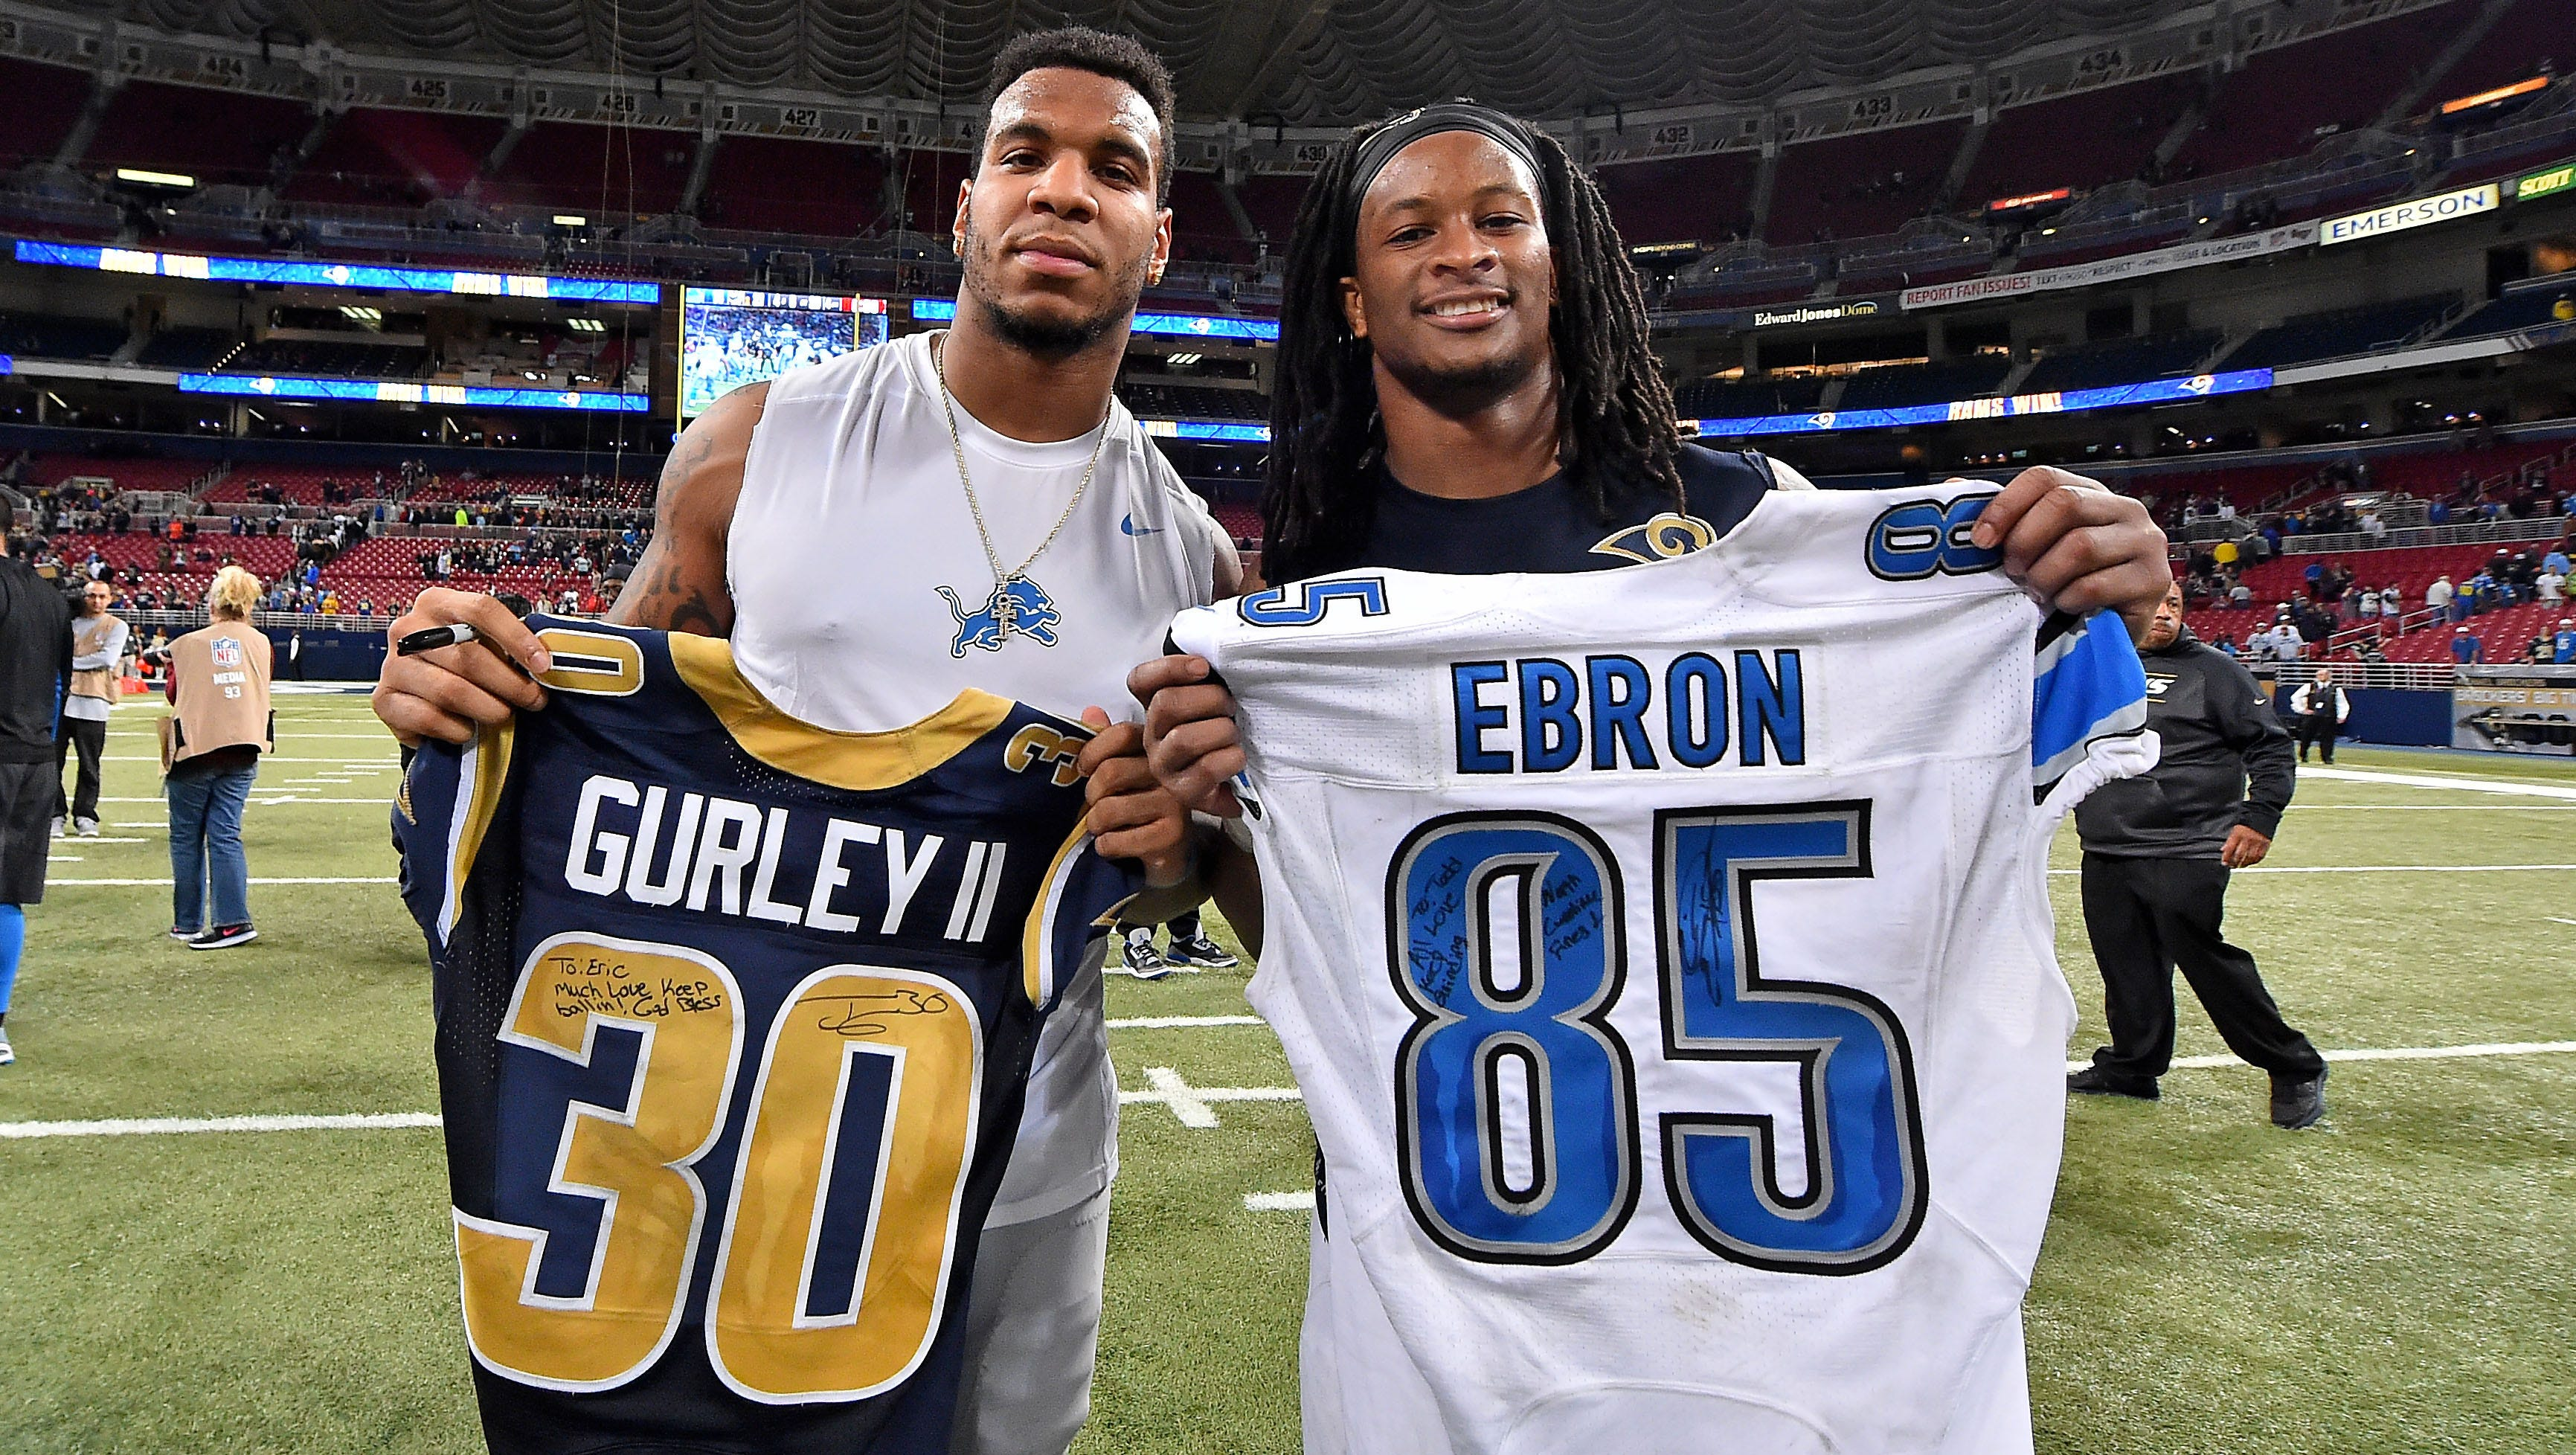 Lions join other NFL players in jersey-swapping craze